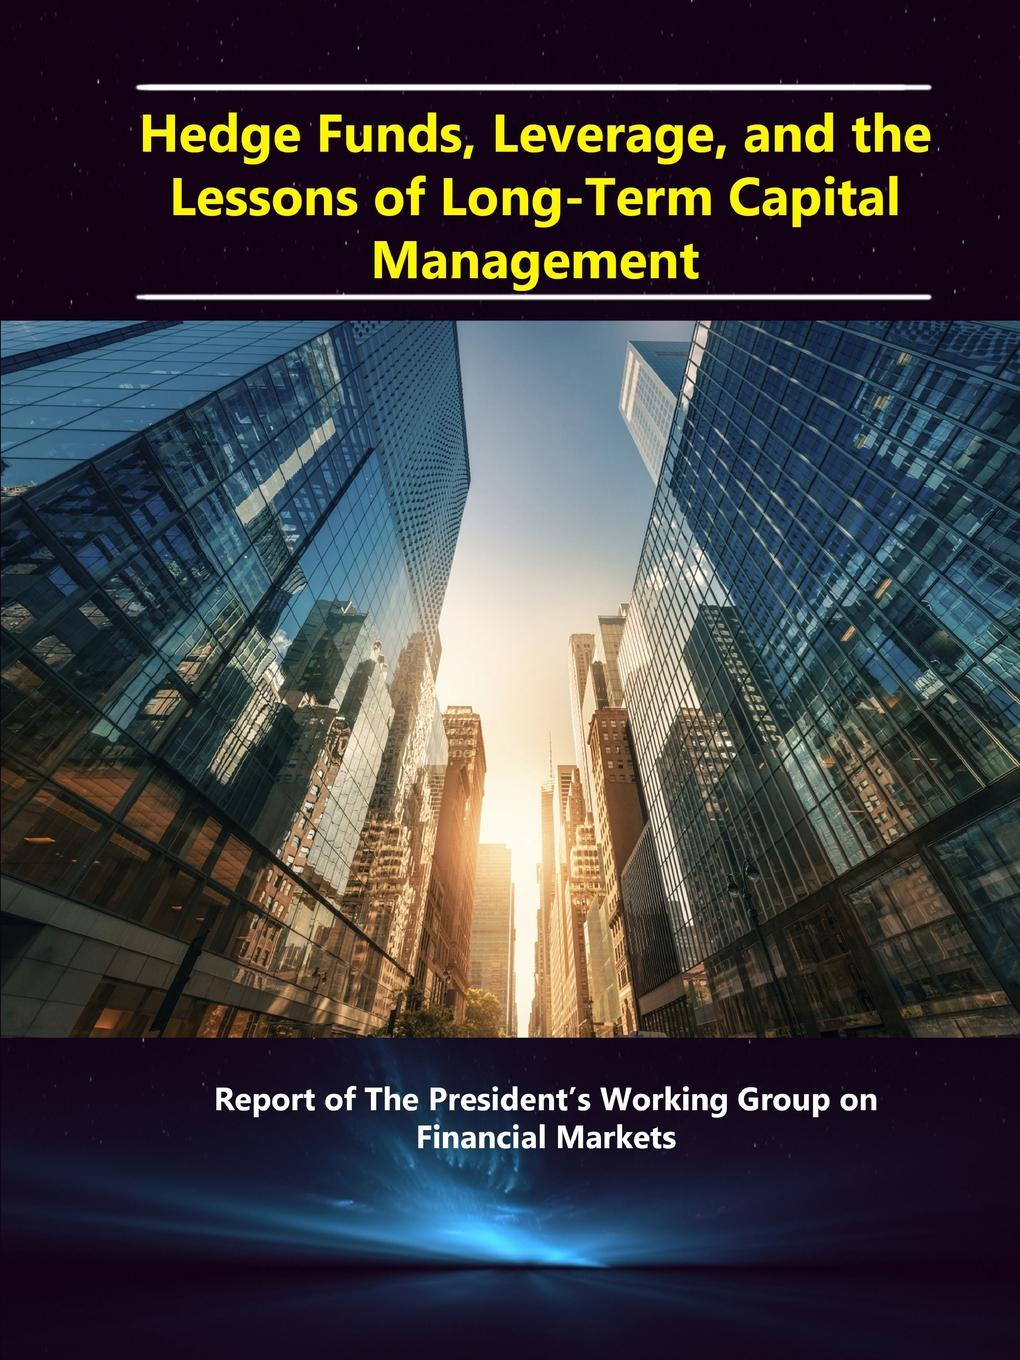 Department of the Treasury Hedge Funds, Leverage, and the Lessons of Long-Term Capital Management - Report of The President.s Working Group on Financial Markets department of the treasury hedge funds leverage and the lessons of long term capital management report of the president s working group on financial markets